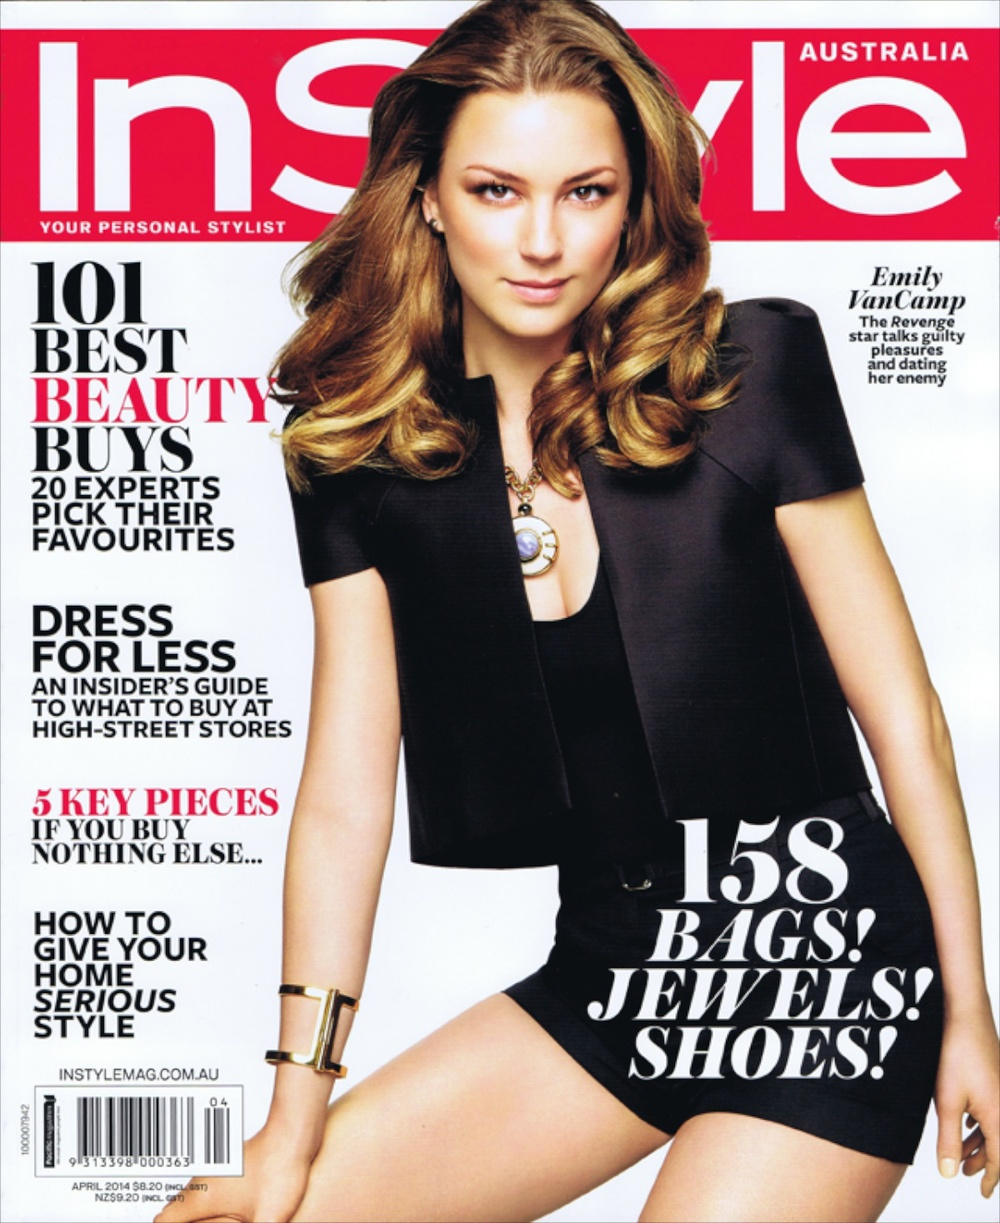 2014-APRIL-INSTYLE-1@2x.jpg